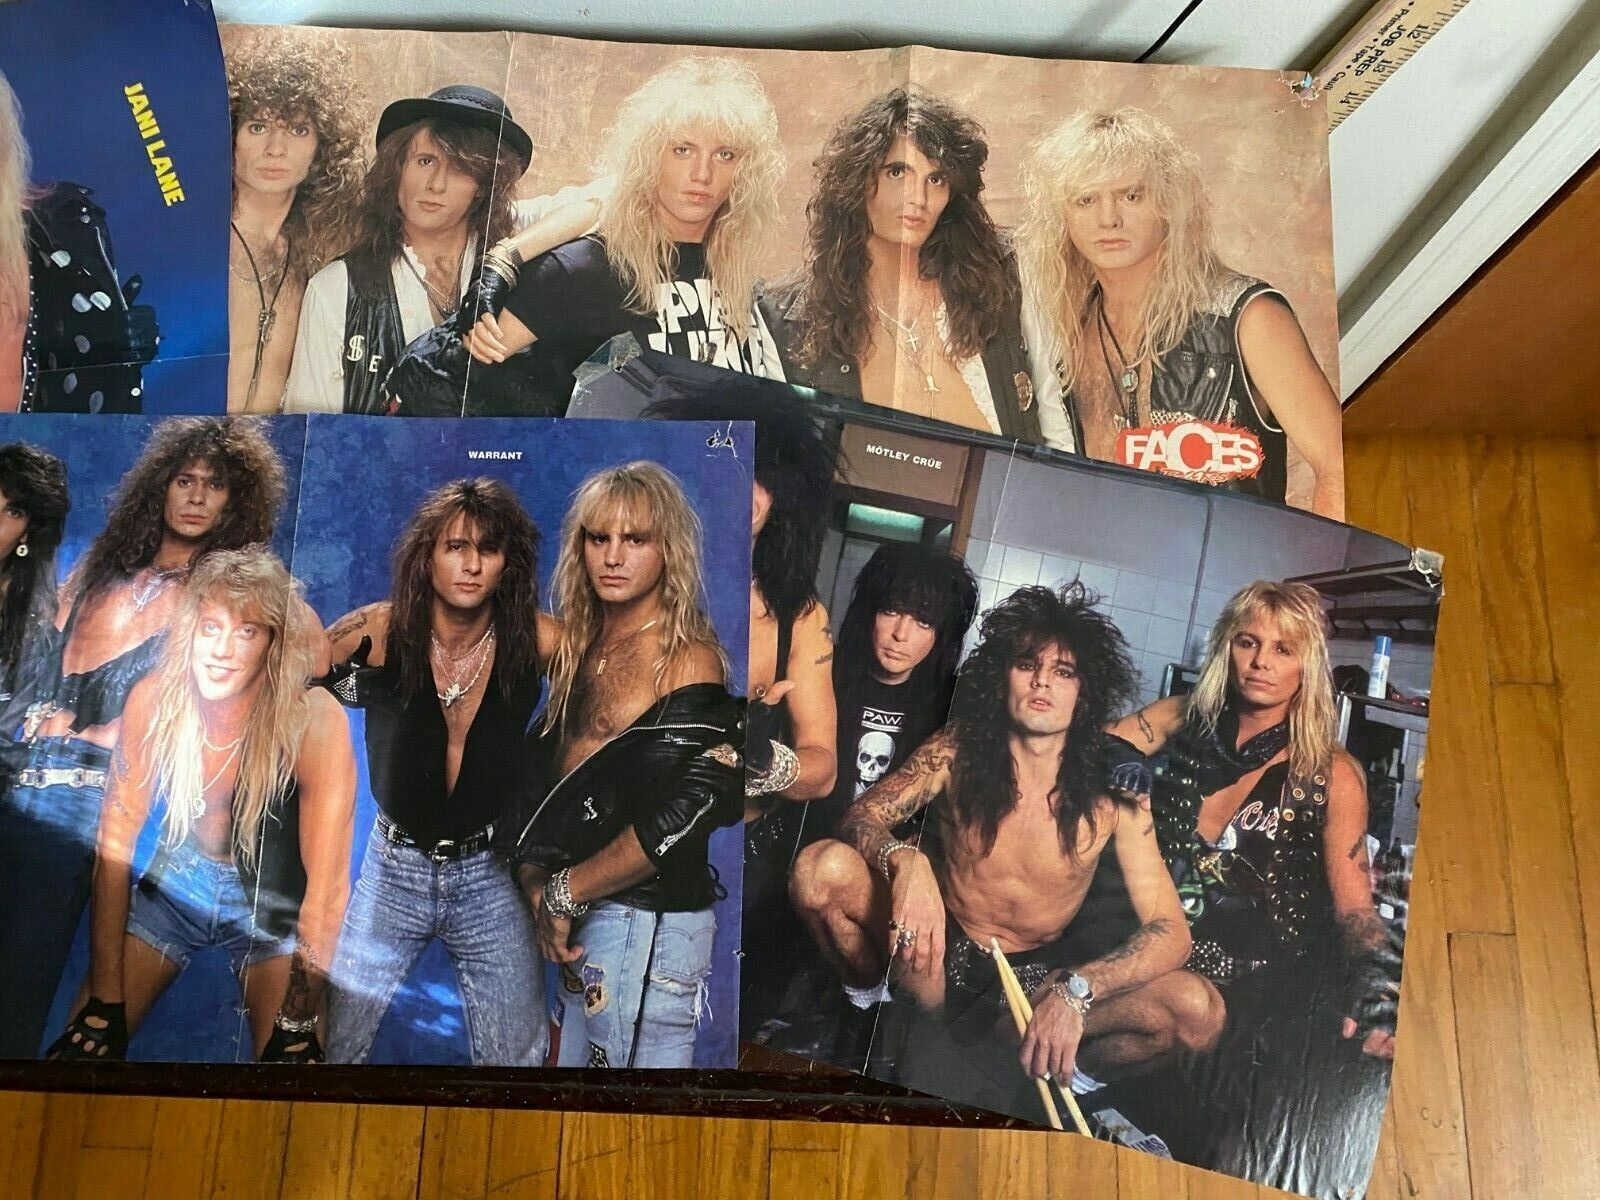 Large Lot Of 80s/90s Hair Band Posters Warrant, Poison, Motley Crue, Etc - $15.99